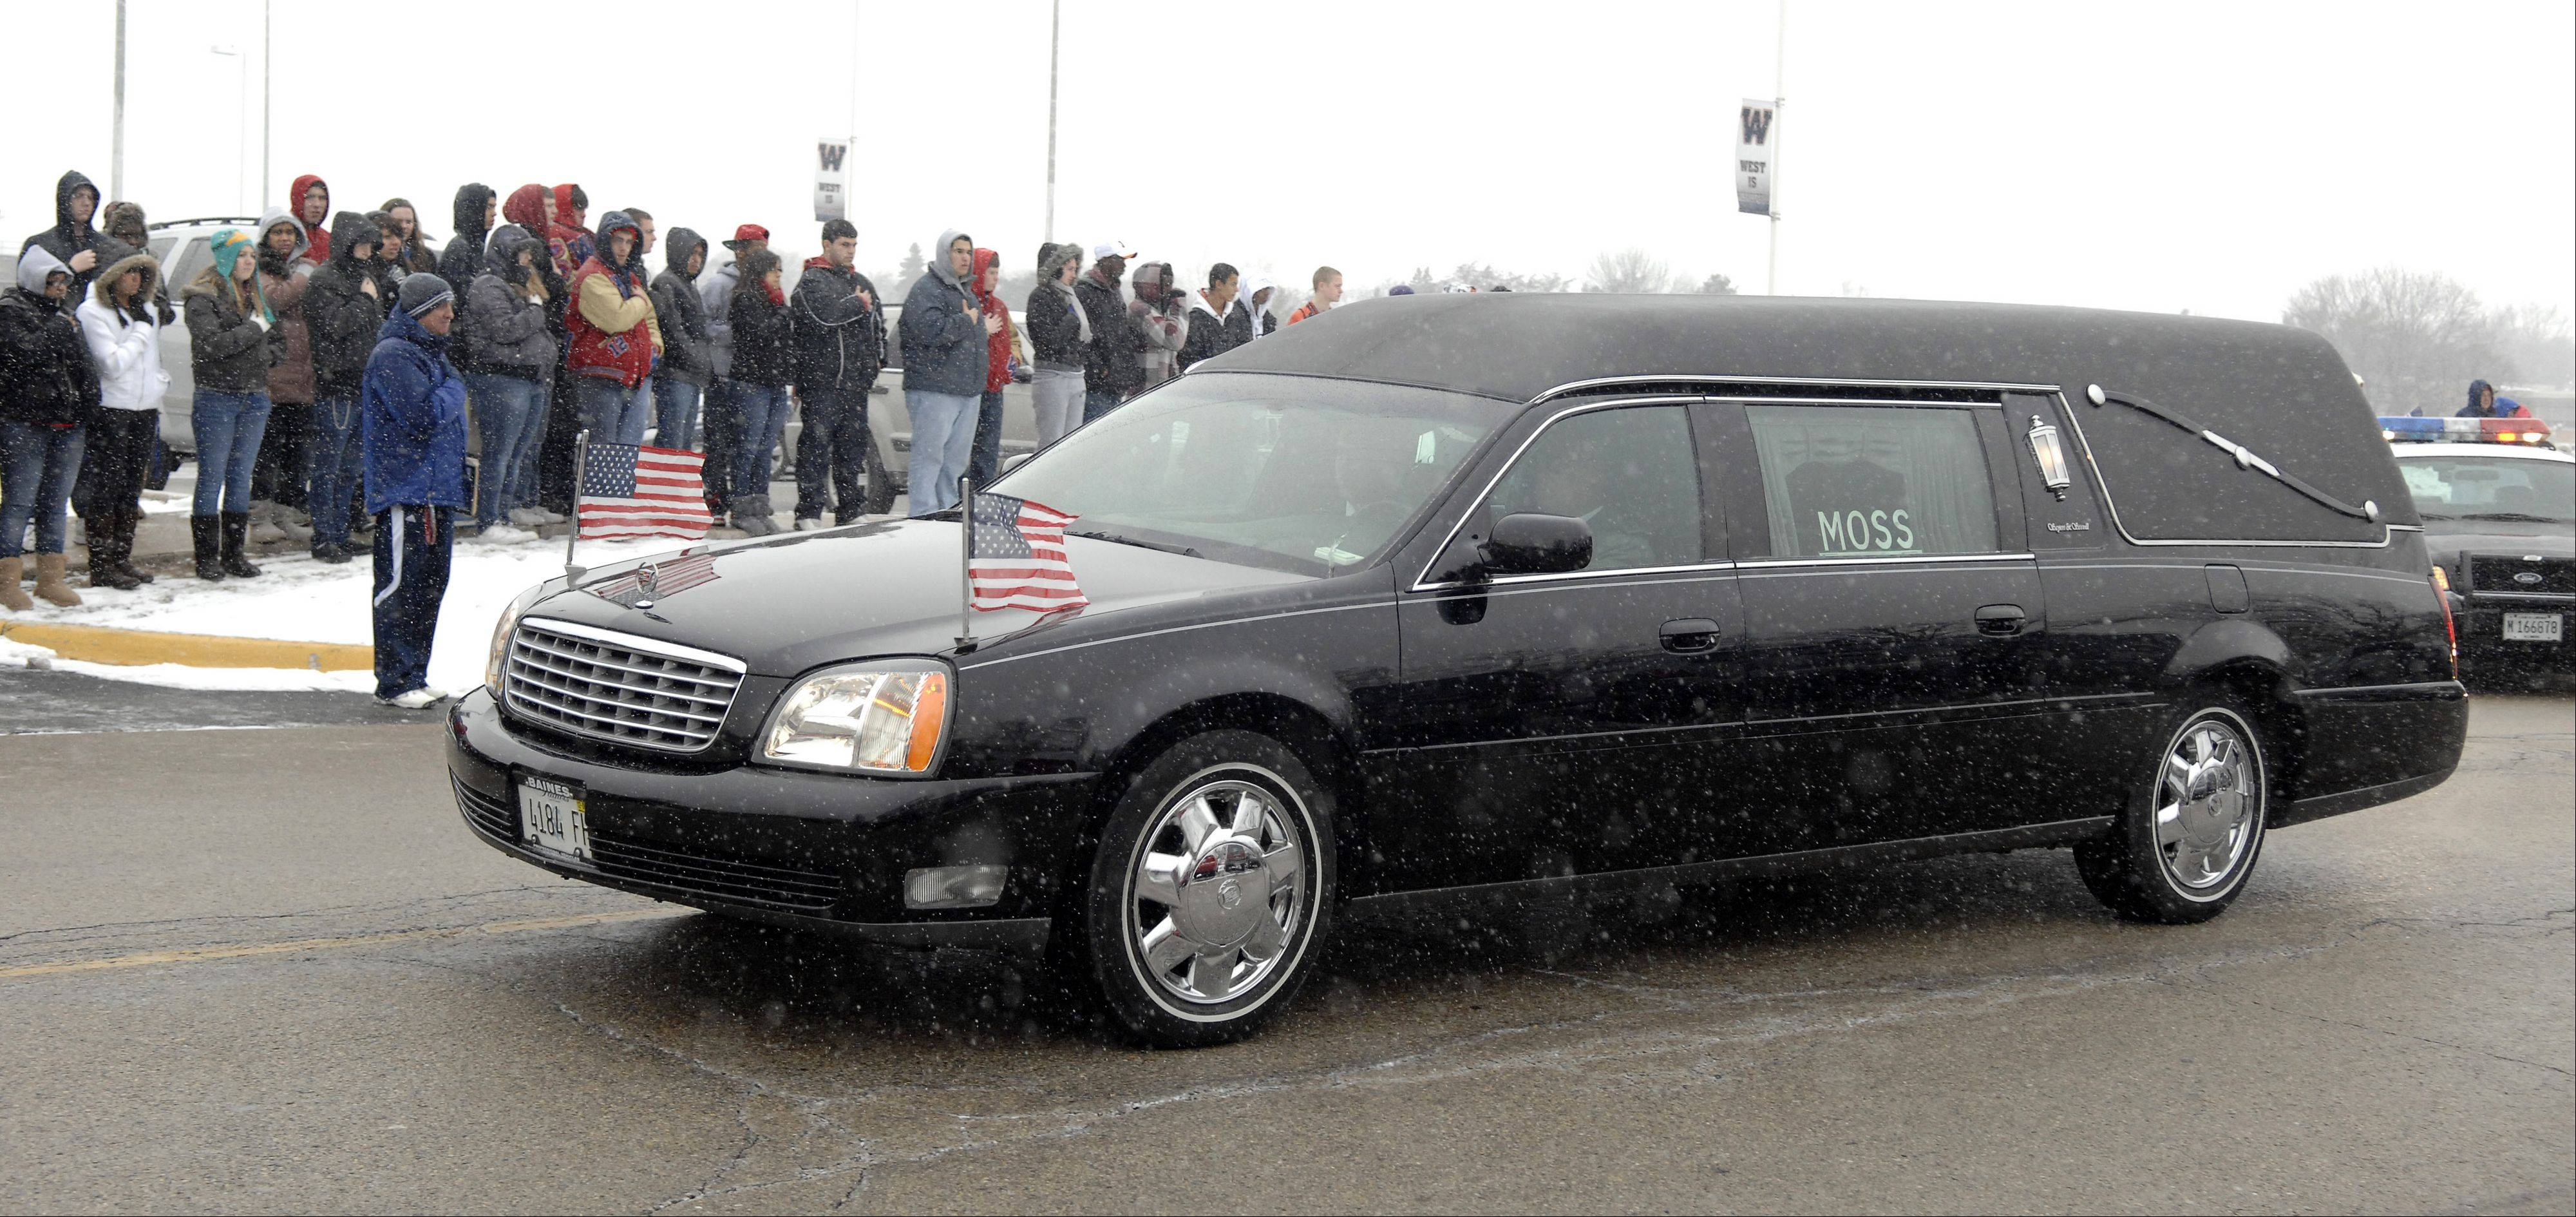 Students from West Aurora High School pay their respects to Spc. Christopher A. Patterson as his funeral procession passes his former school on Friday, January 20. Patterson, a 2009 graduate, was killed on January 6.